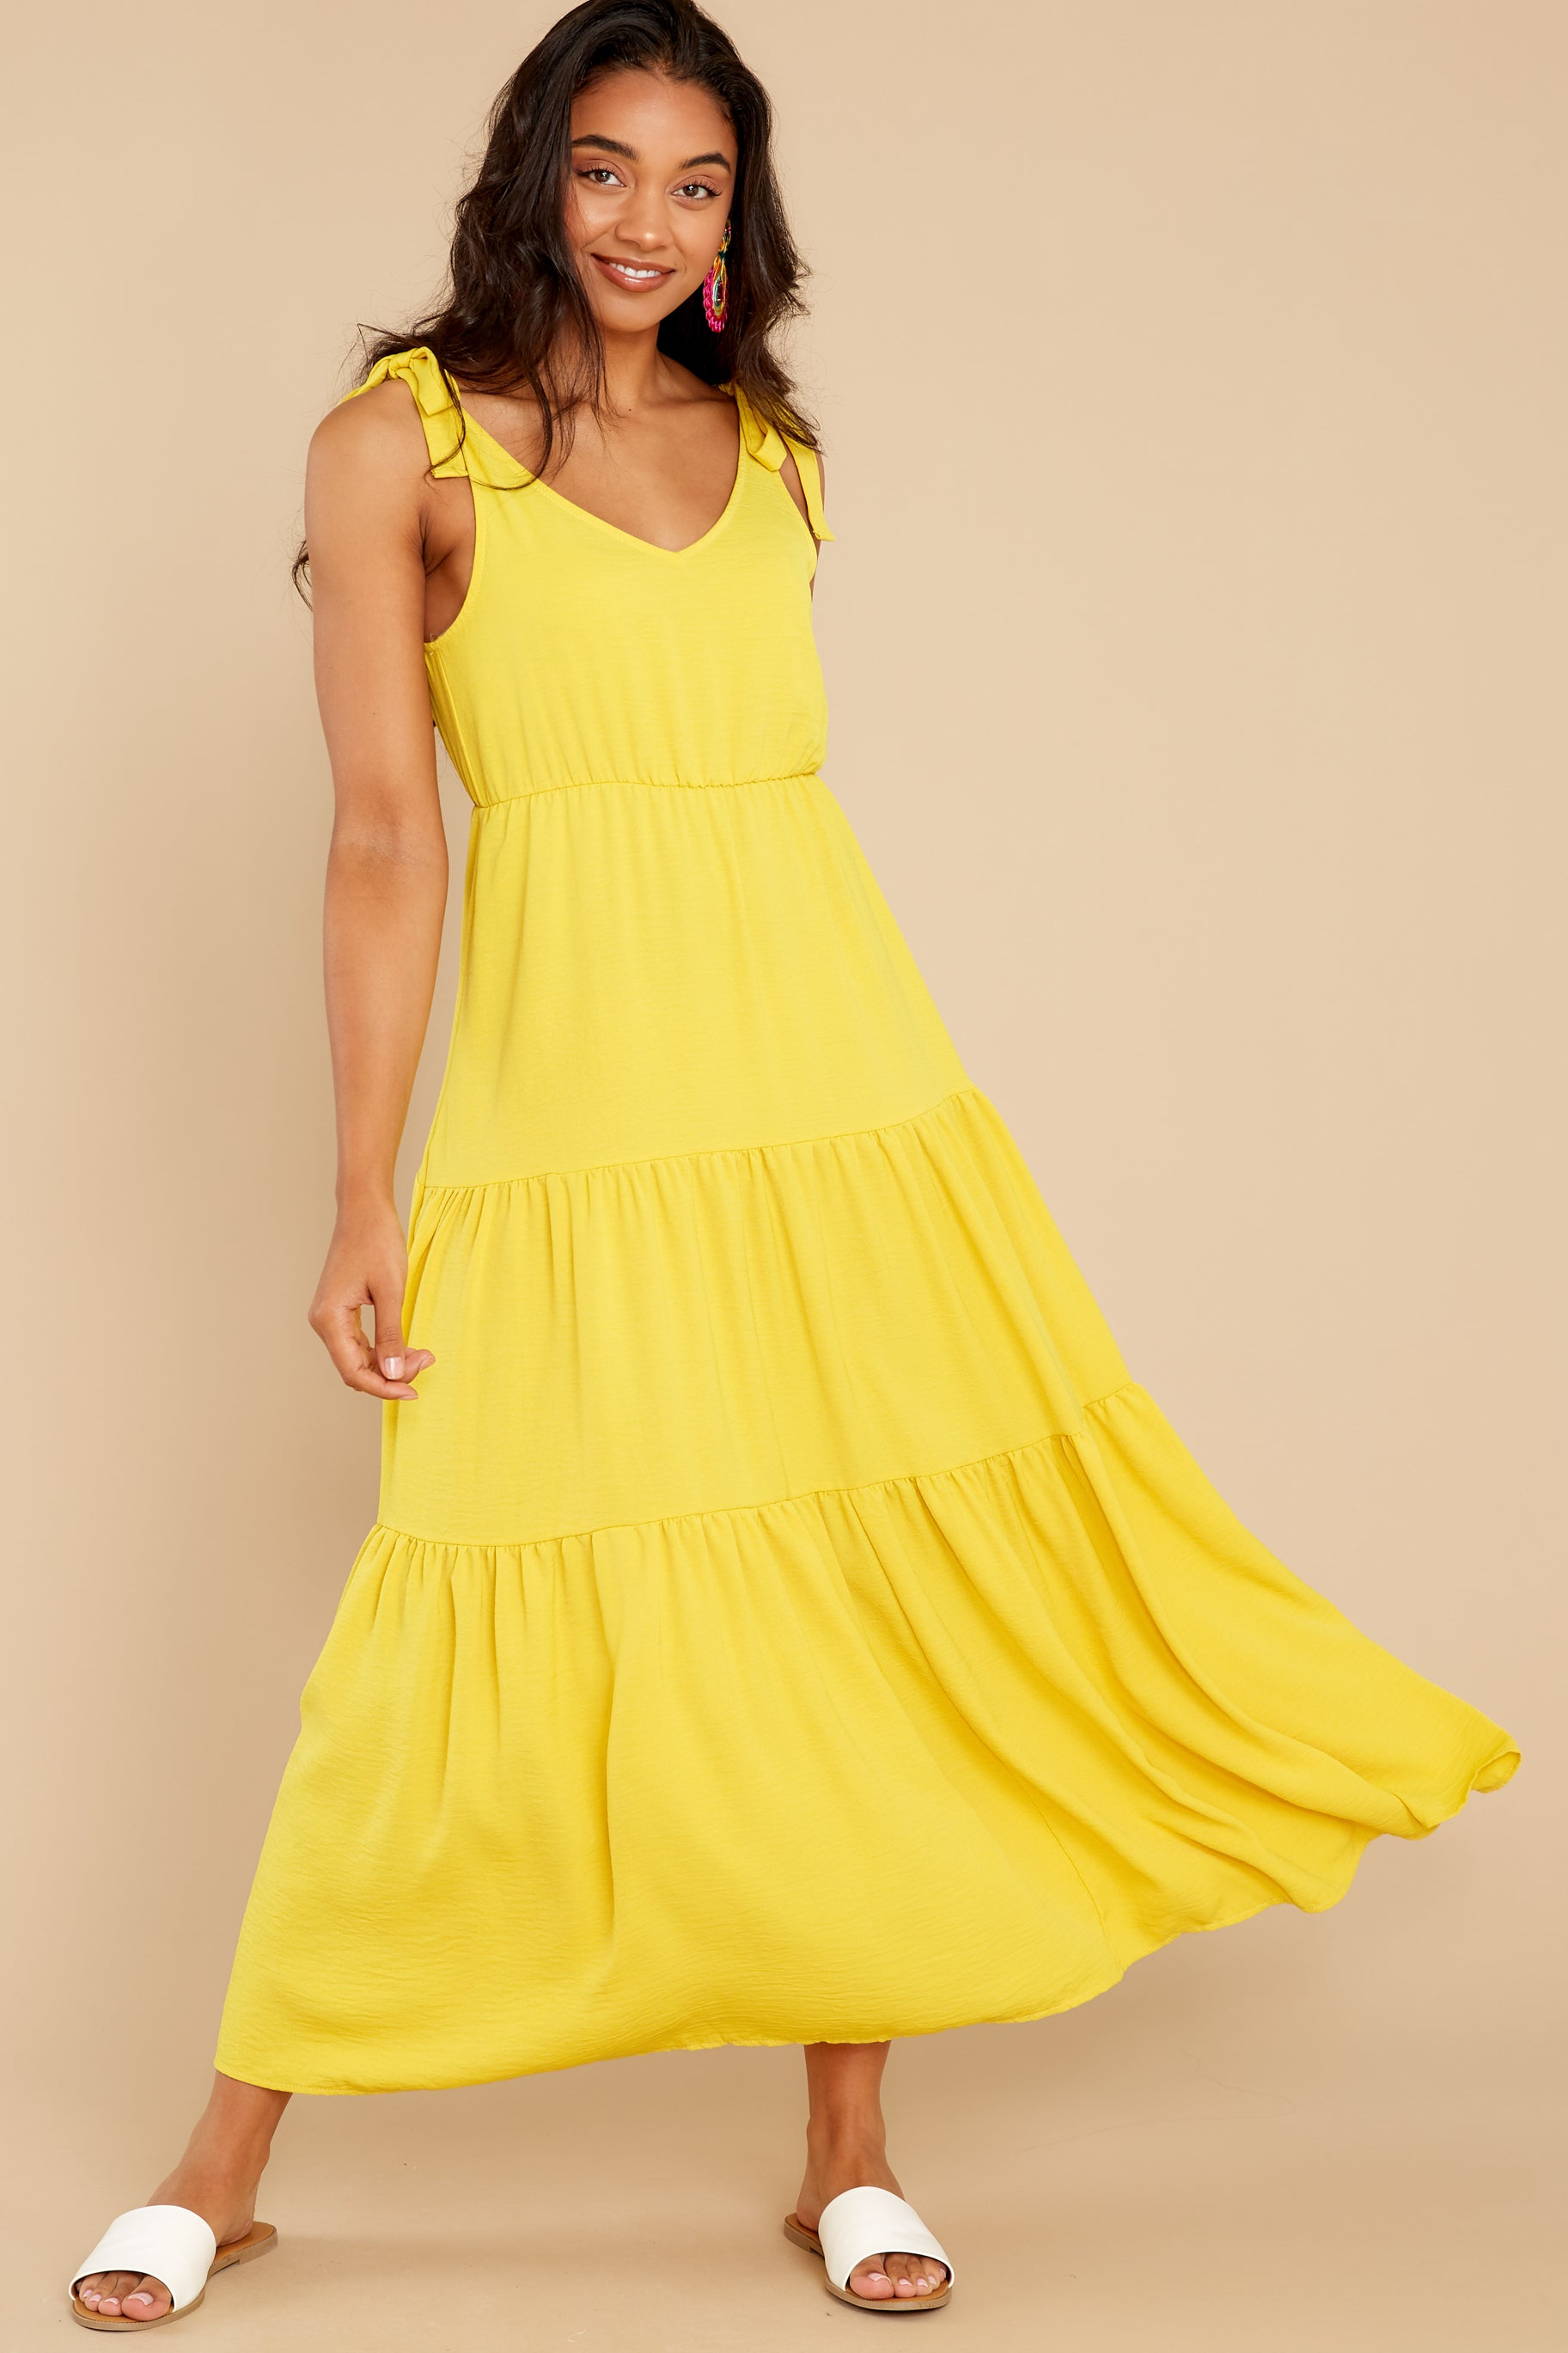 6 Right Kind Of Attention Yellow Maxi Dress at reddress.com